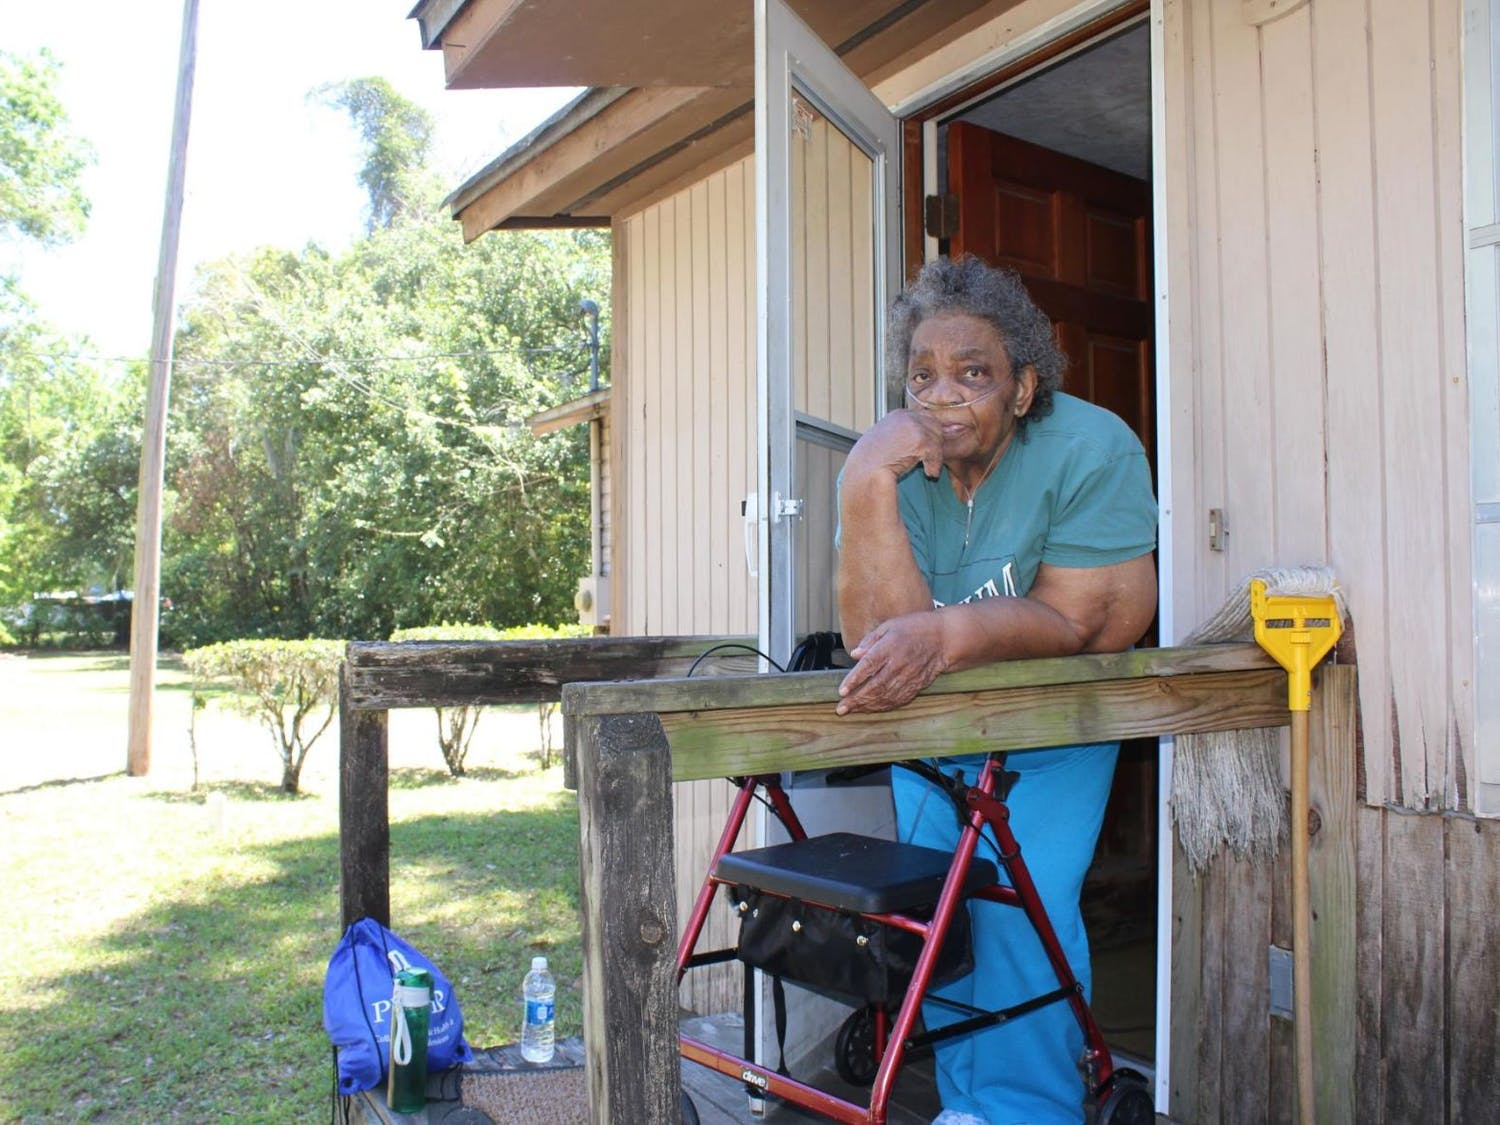 Mamie Leath, 89, watches as UF students help clear fallen leaves from her home in Gainesville's Porters Community on Saturday as a part of UF Student Government's inaugural The Big Event. Leath said she felt grateful the students volunteered their time clearing her yard of leaves and miscellaneous junk, like rusted bicycles and an armchair.